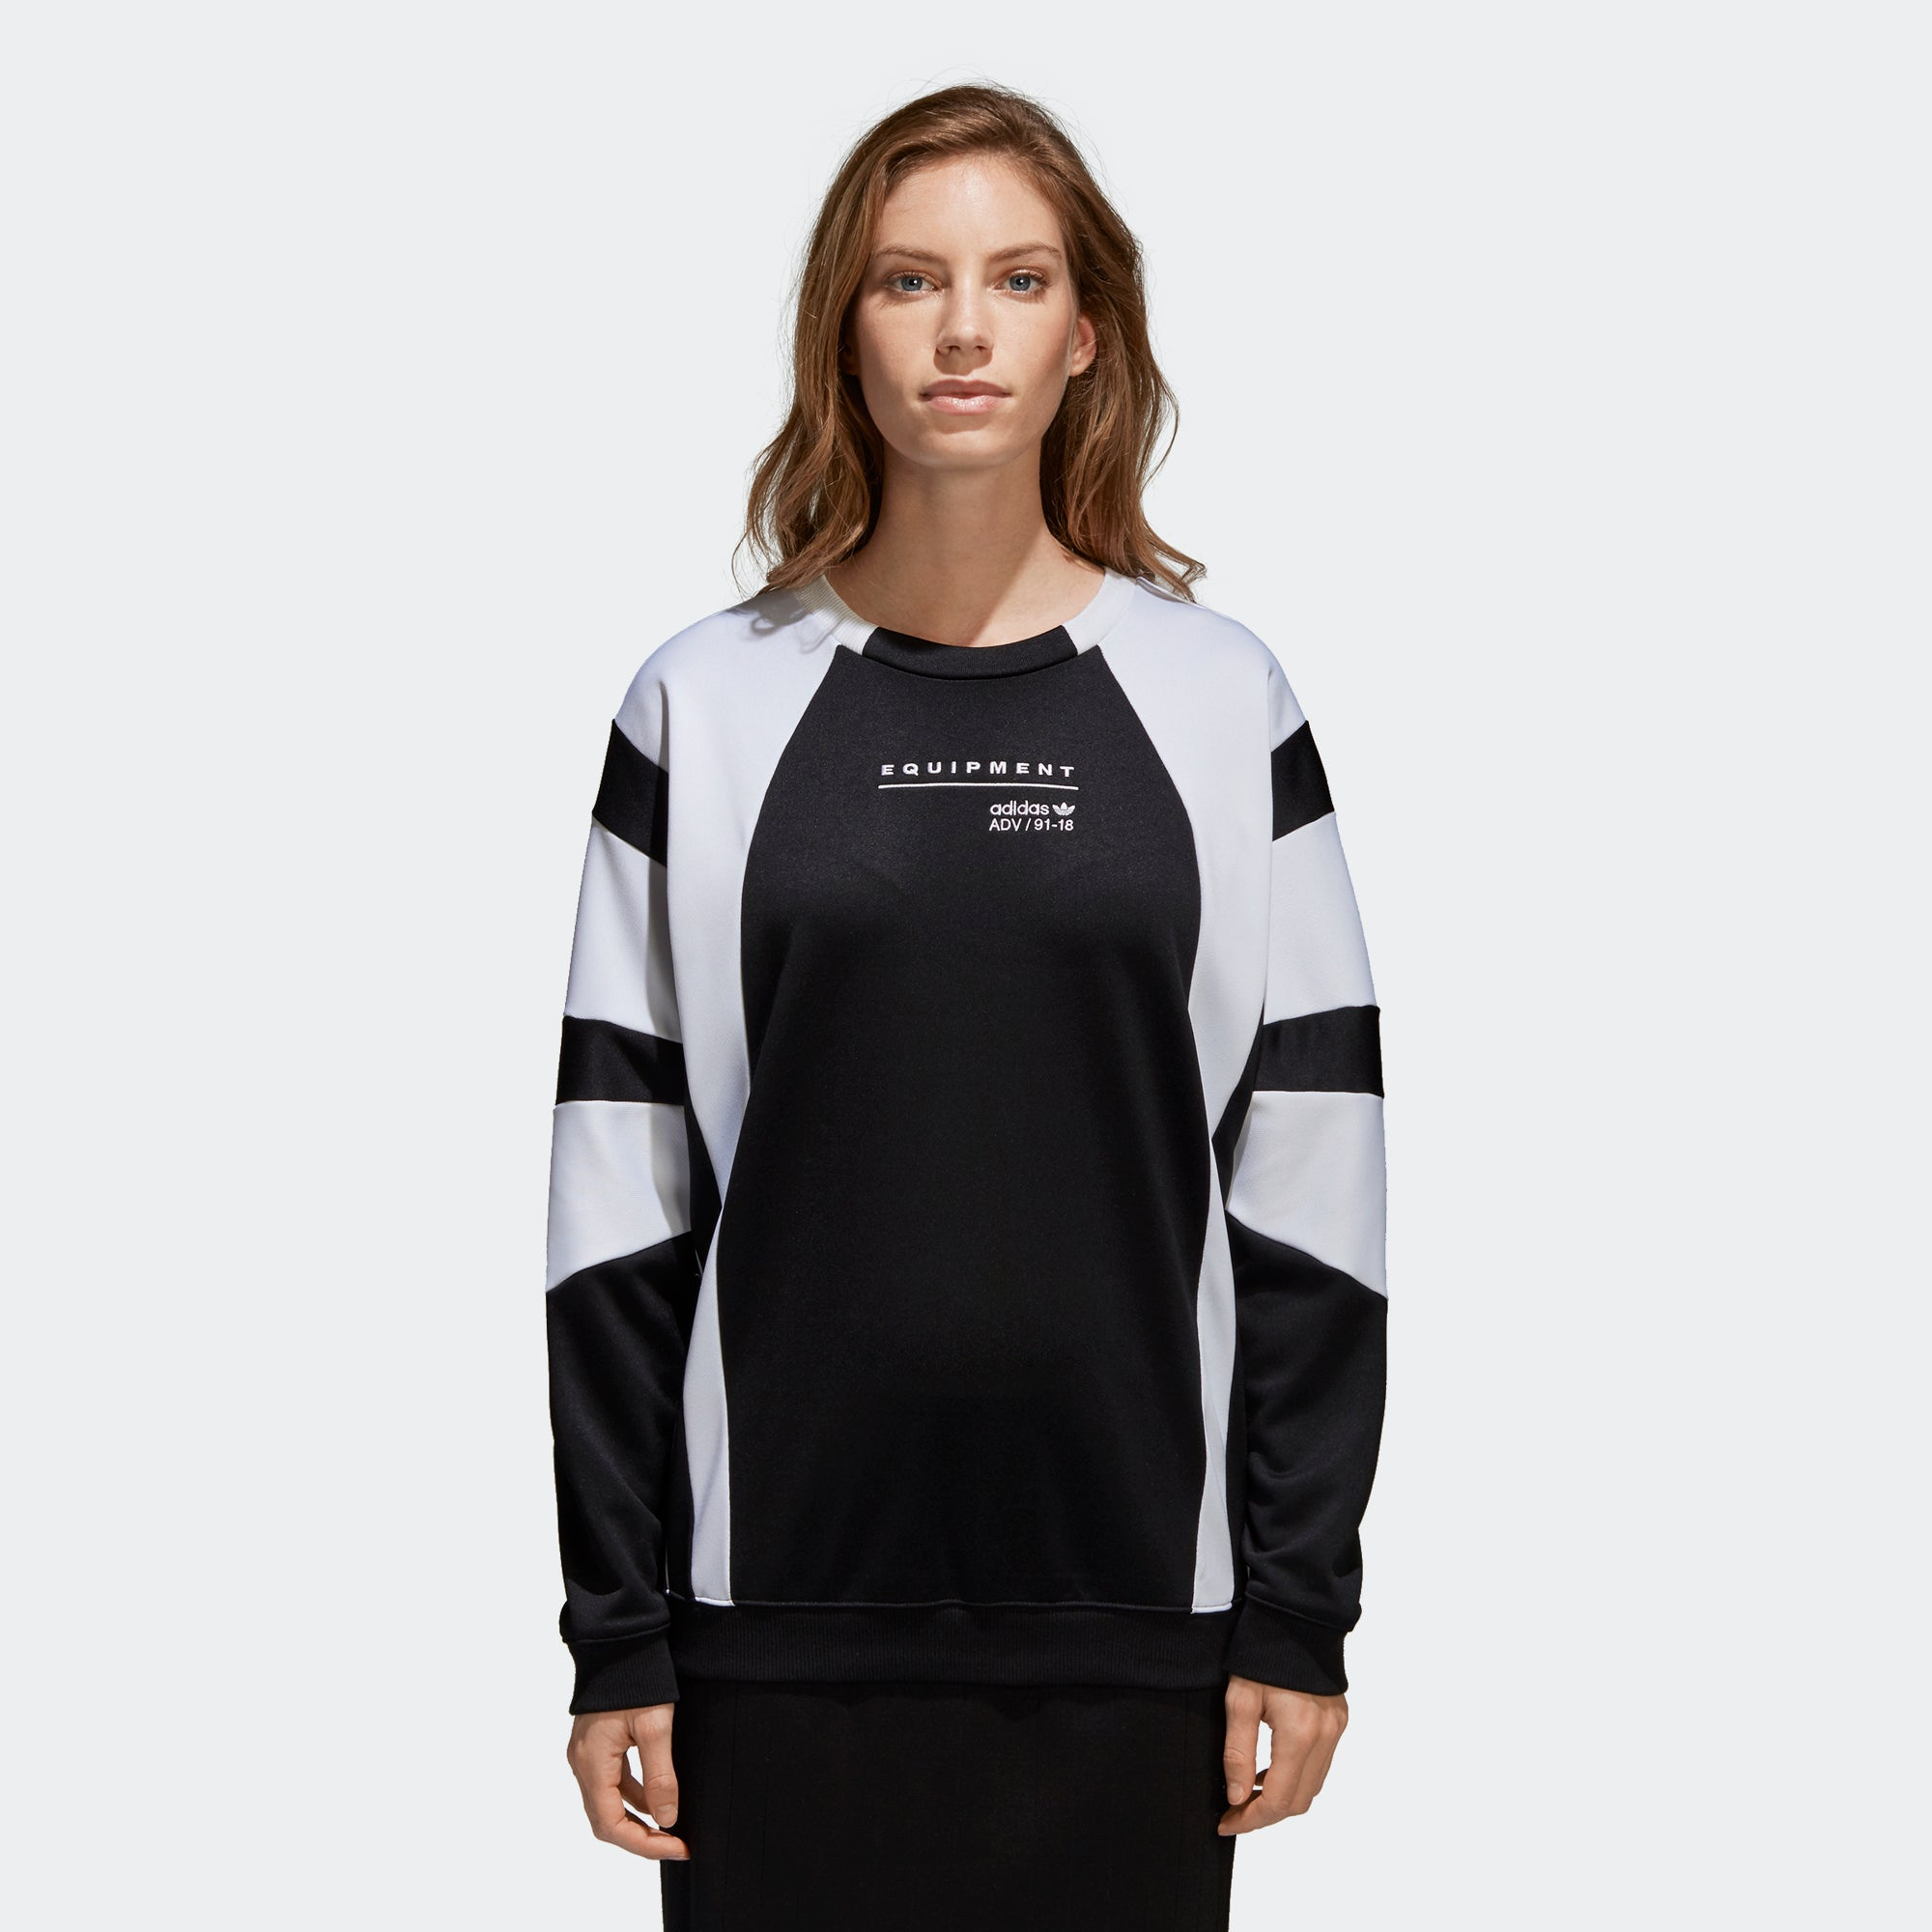 Women s adidas Originals EQT Sweatshirt Black and White CV7778 ... f7dde43c0